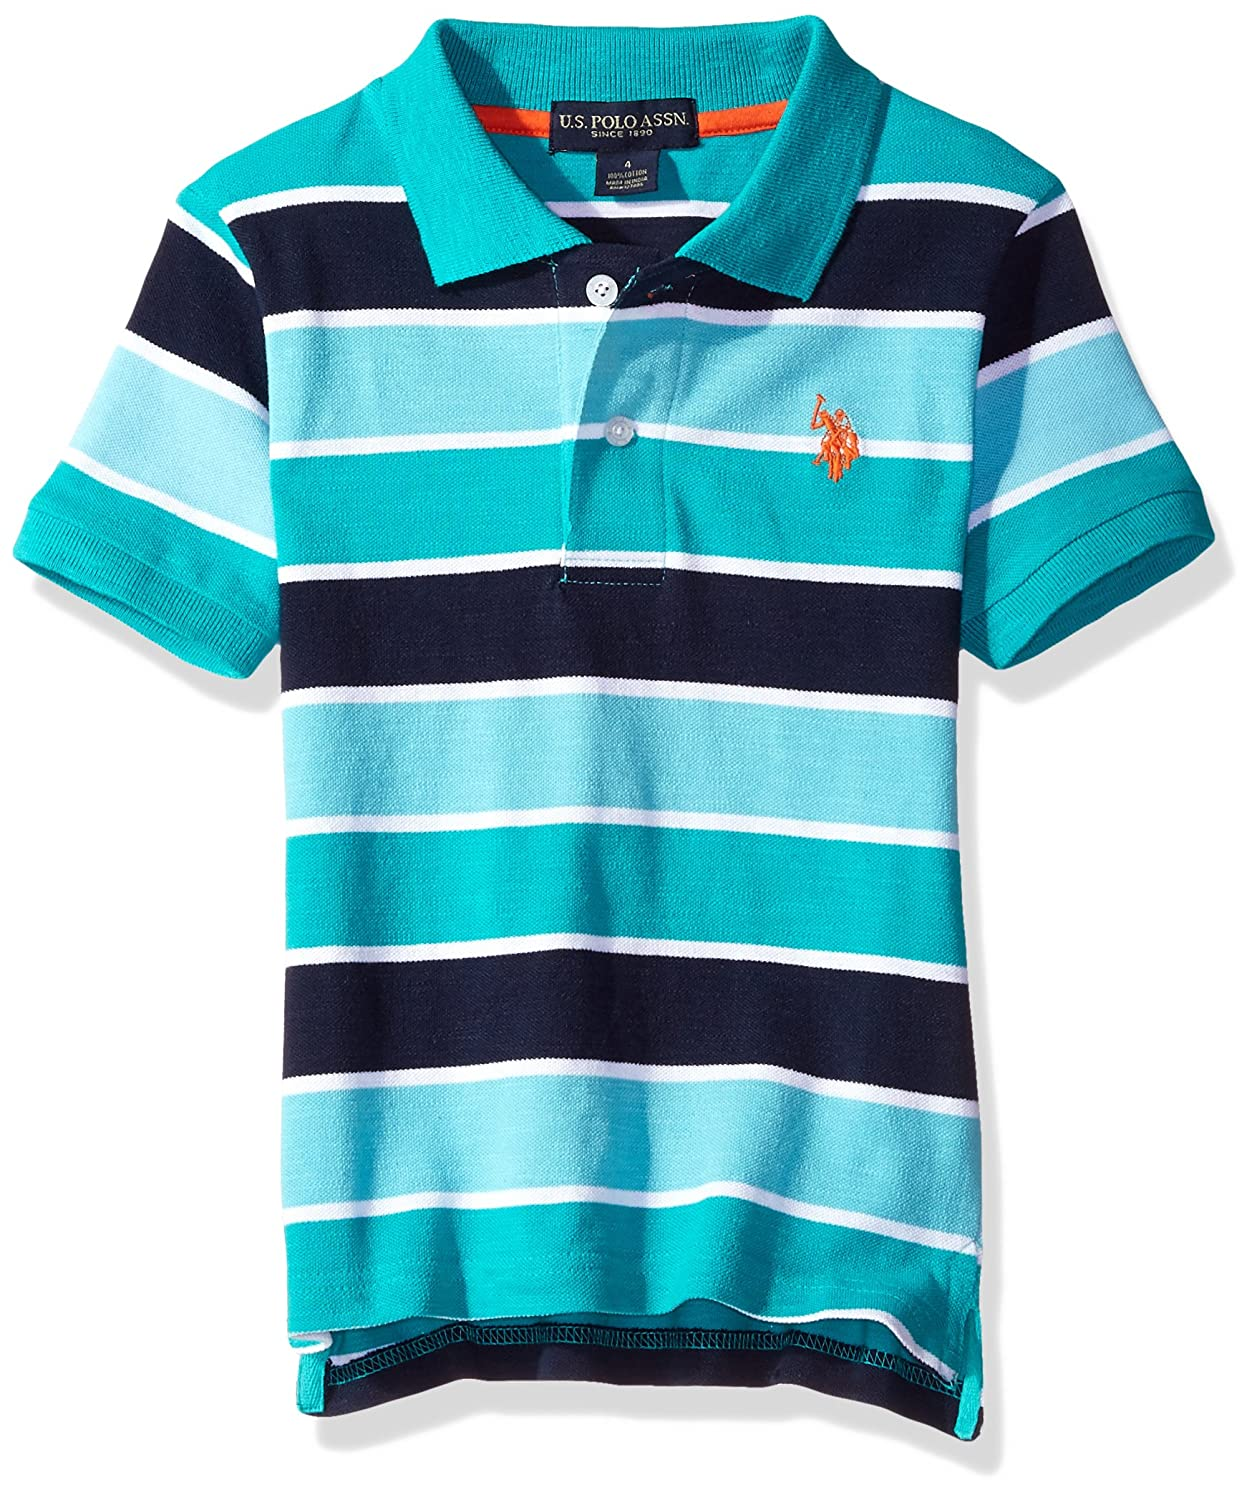 U.S. Polo Assn. Boys' Short Sleeve Space Dyed Shirt SC38